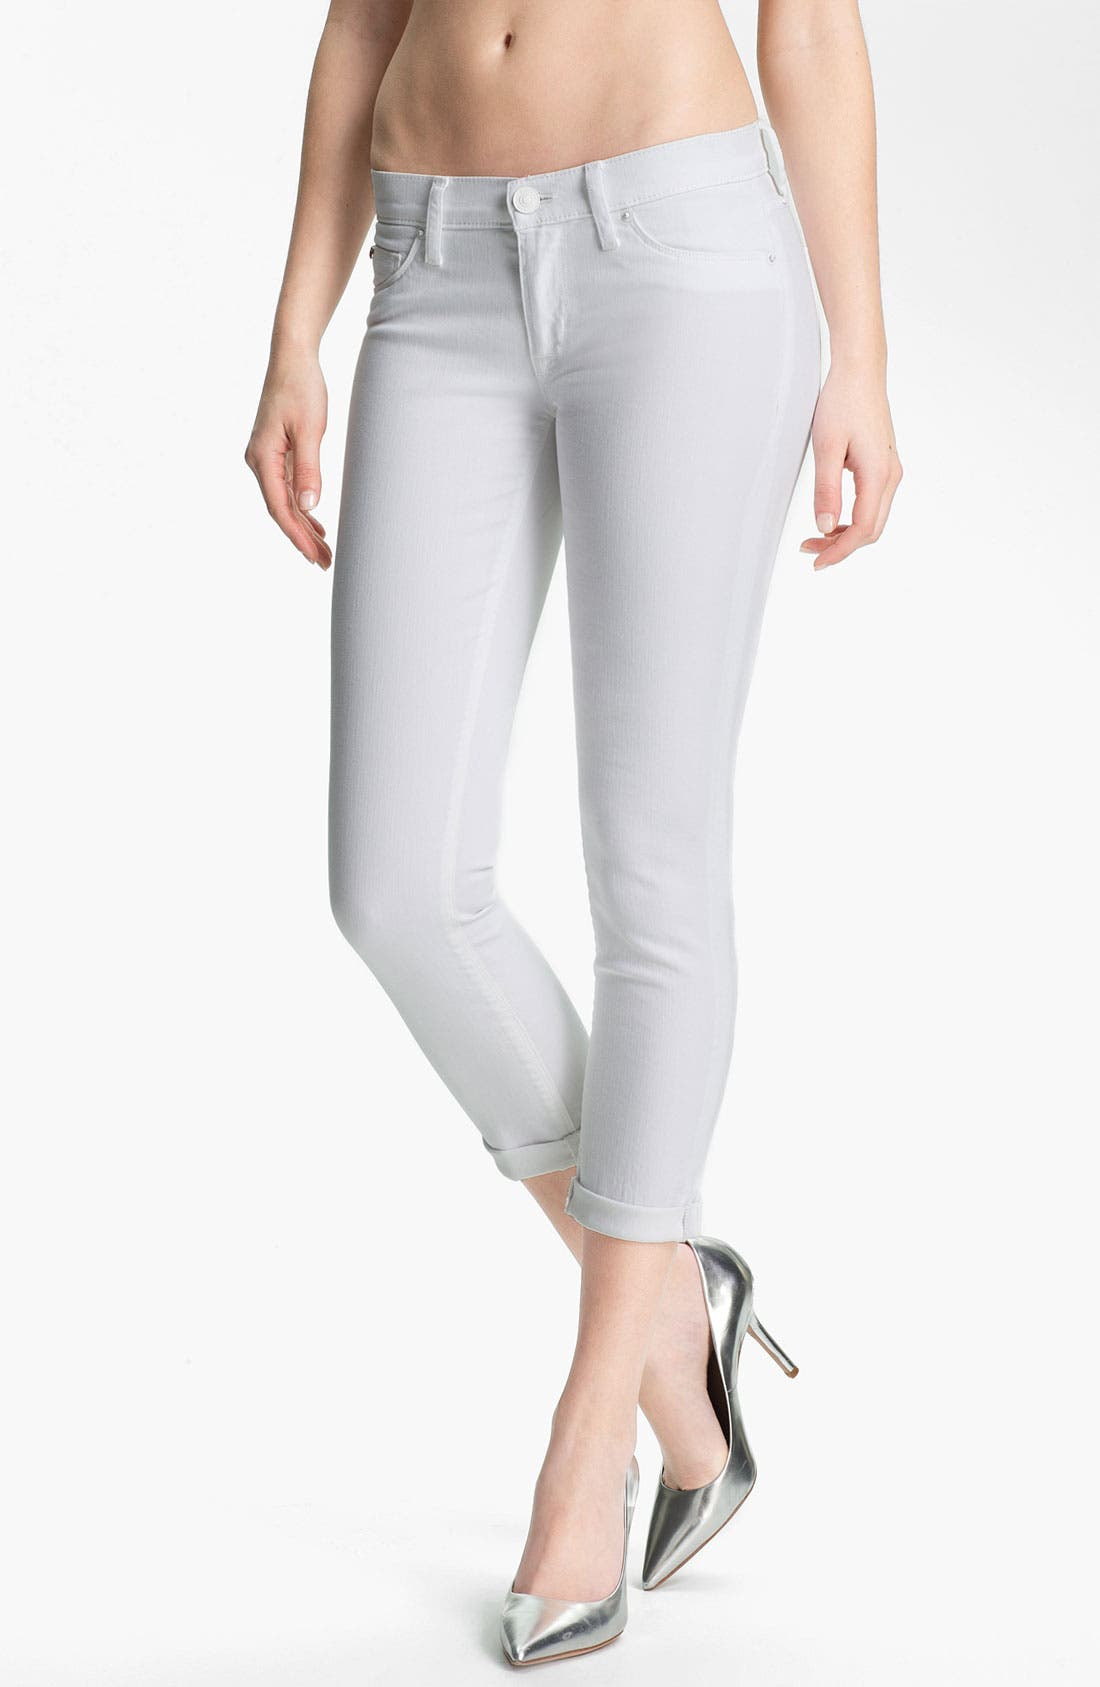 Alternate Image 1 Selected - Hudson Jeans 'Collette' Cuff Skinny Jeans (White)